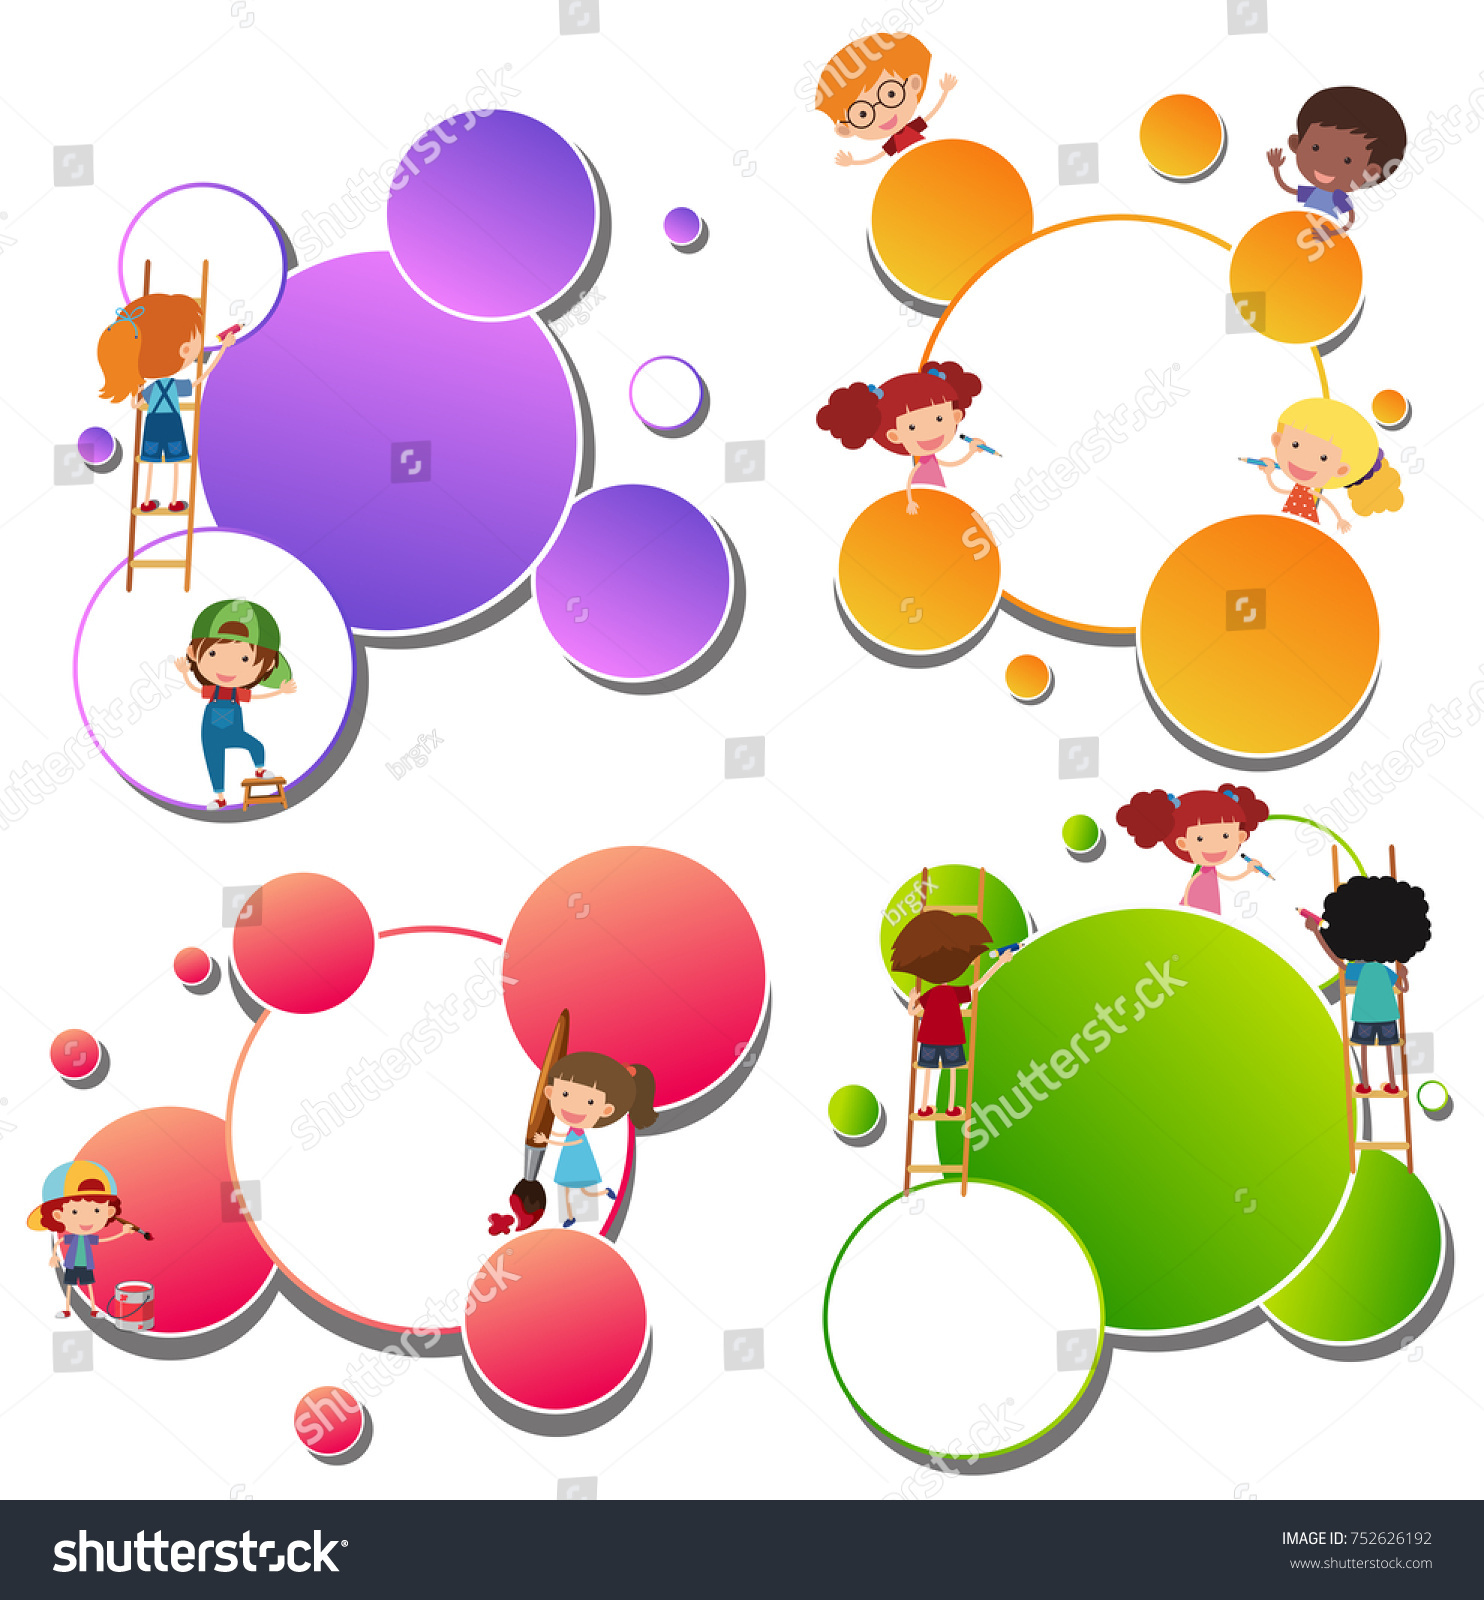 Border Templates Kids Painting Illustration Stock Vector (Royalty ...